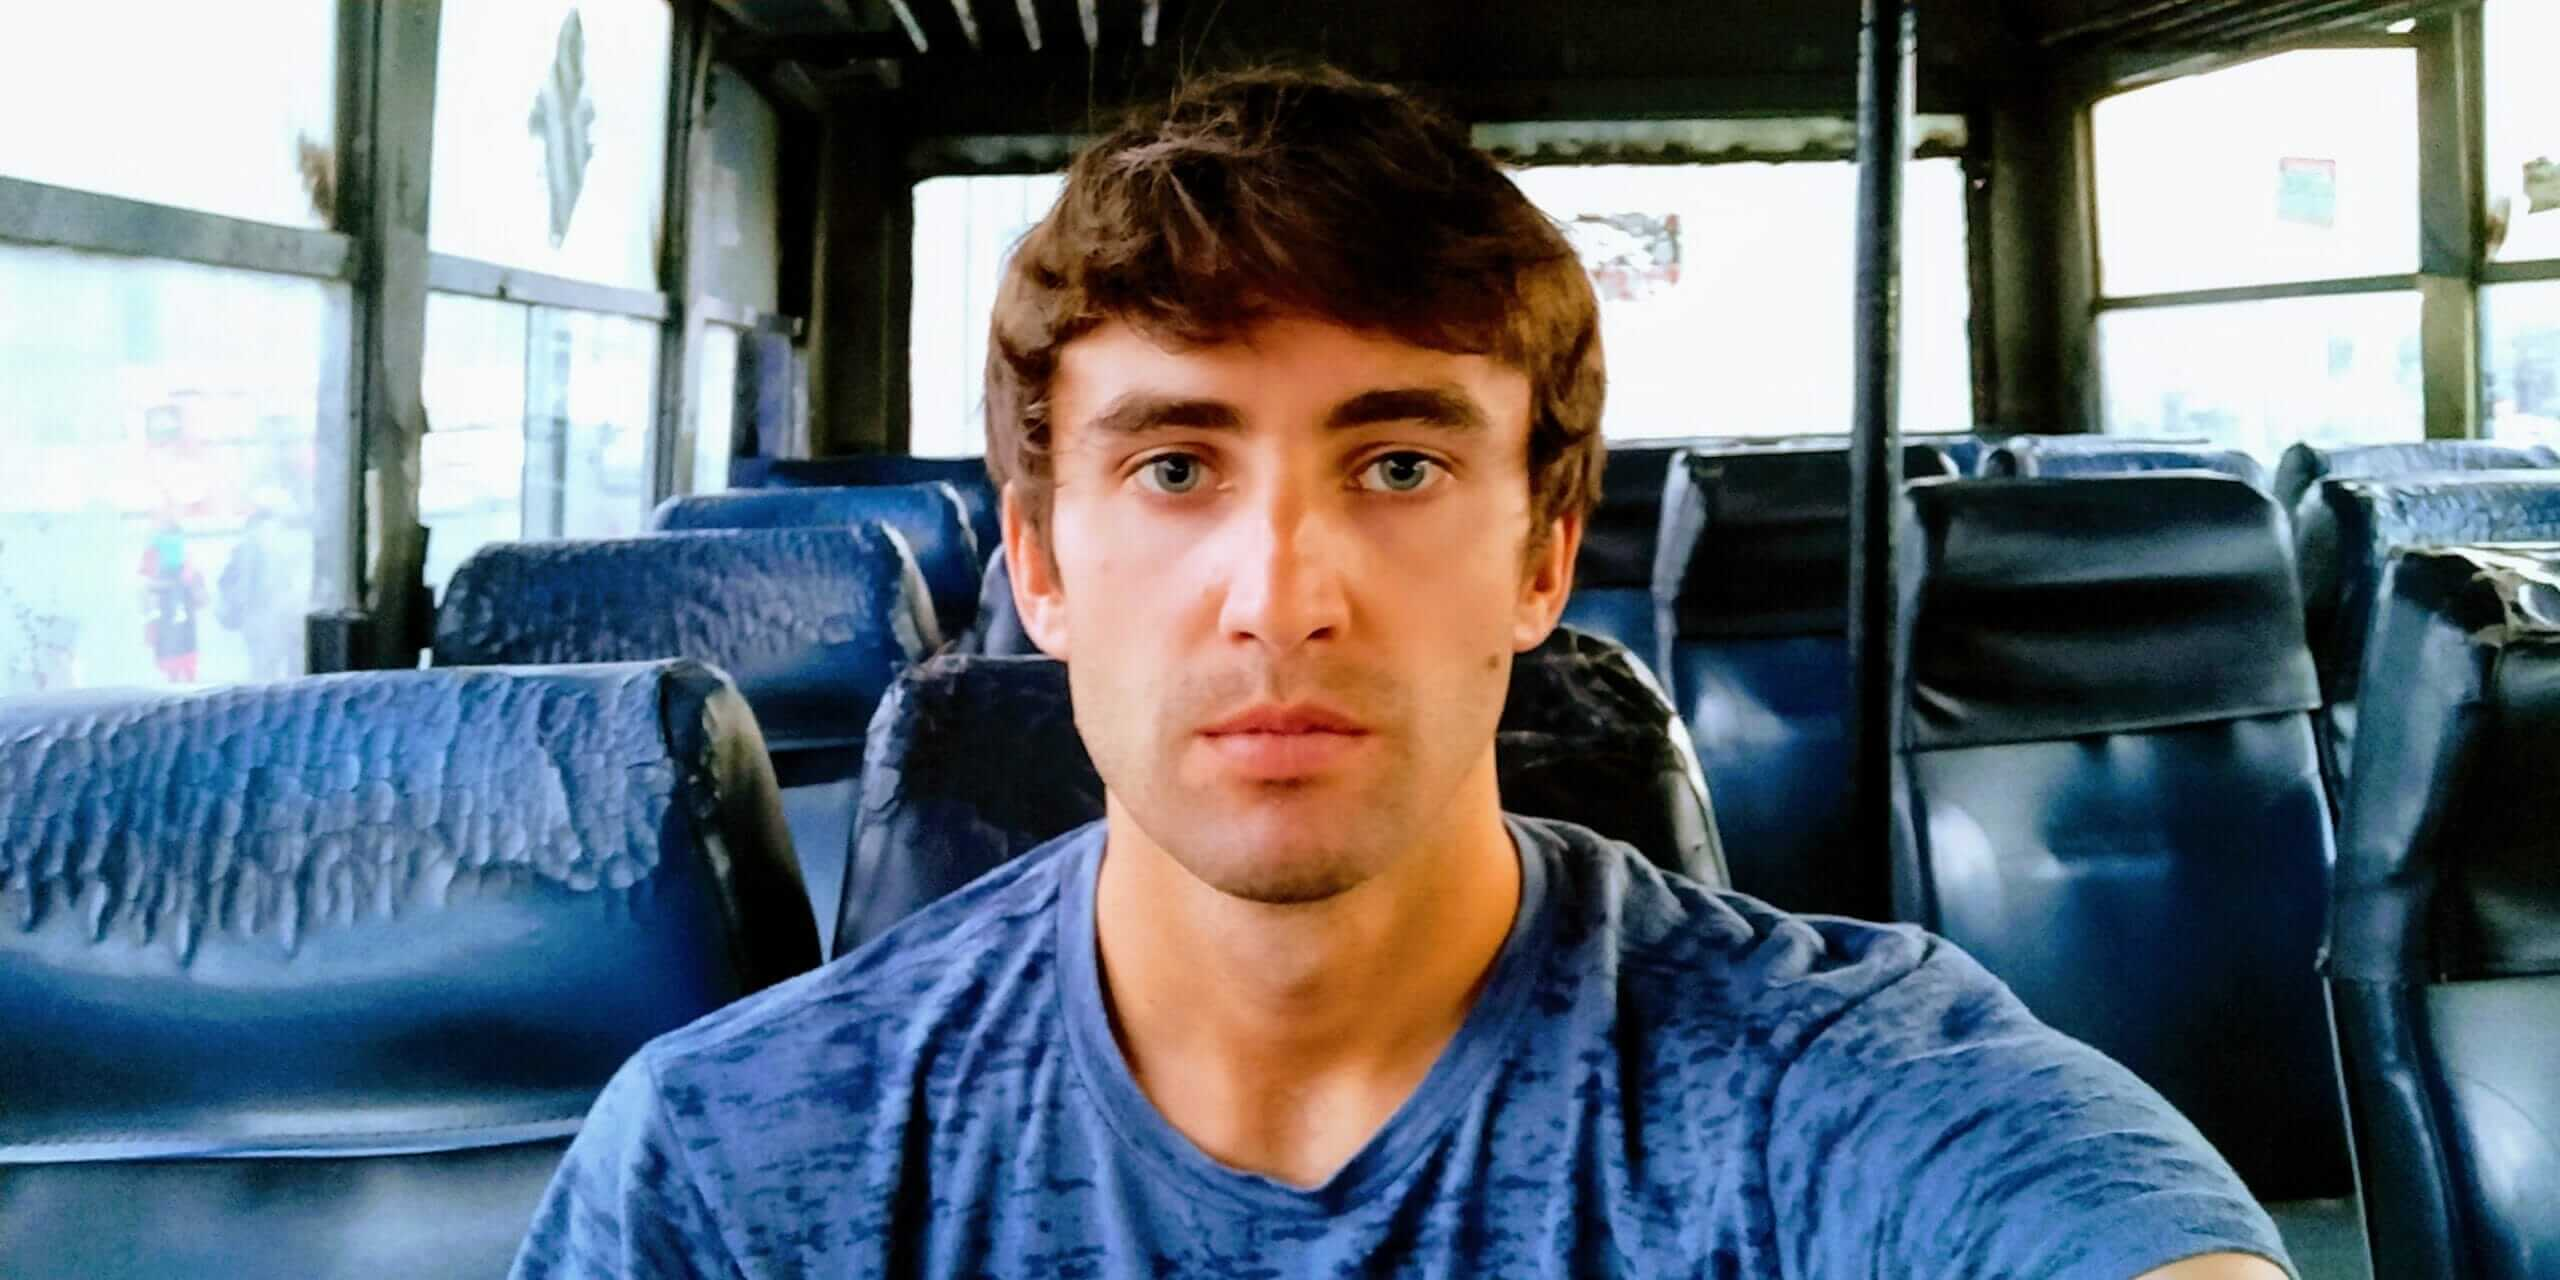 Selfie in a beat-up empty Indian bus while backpacking India